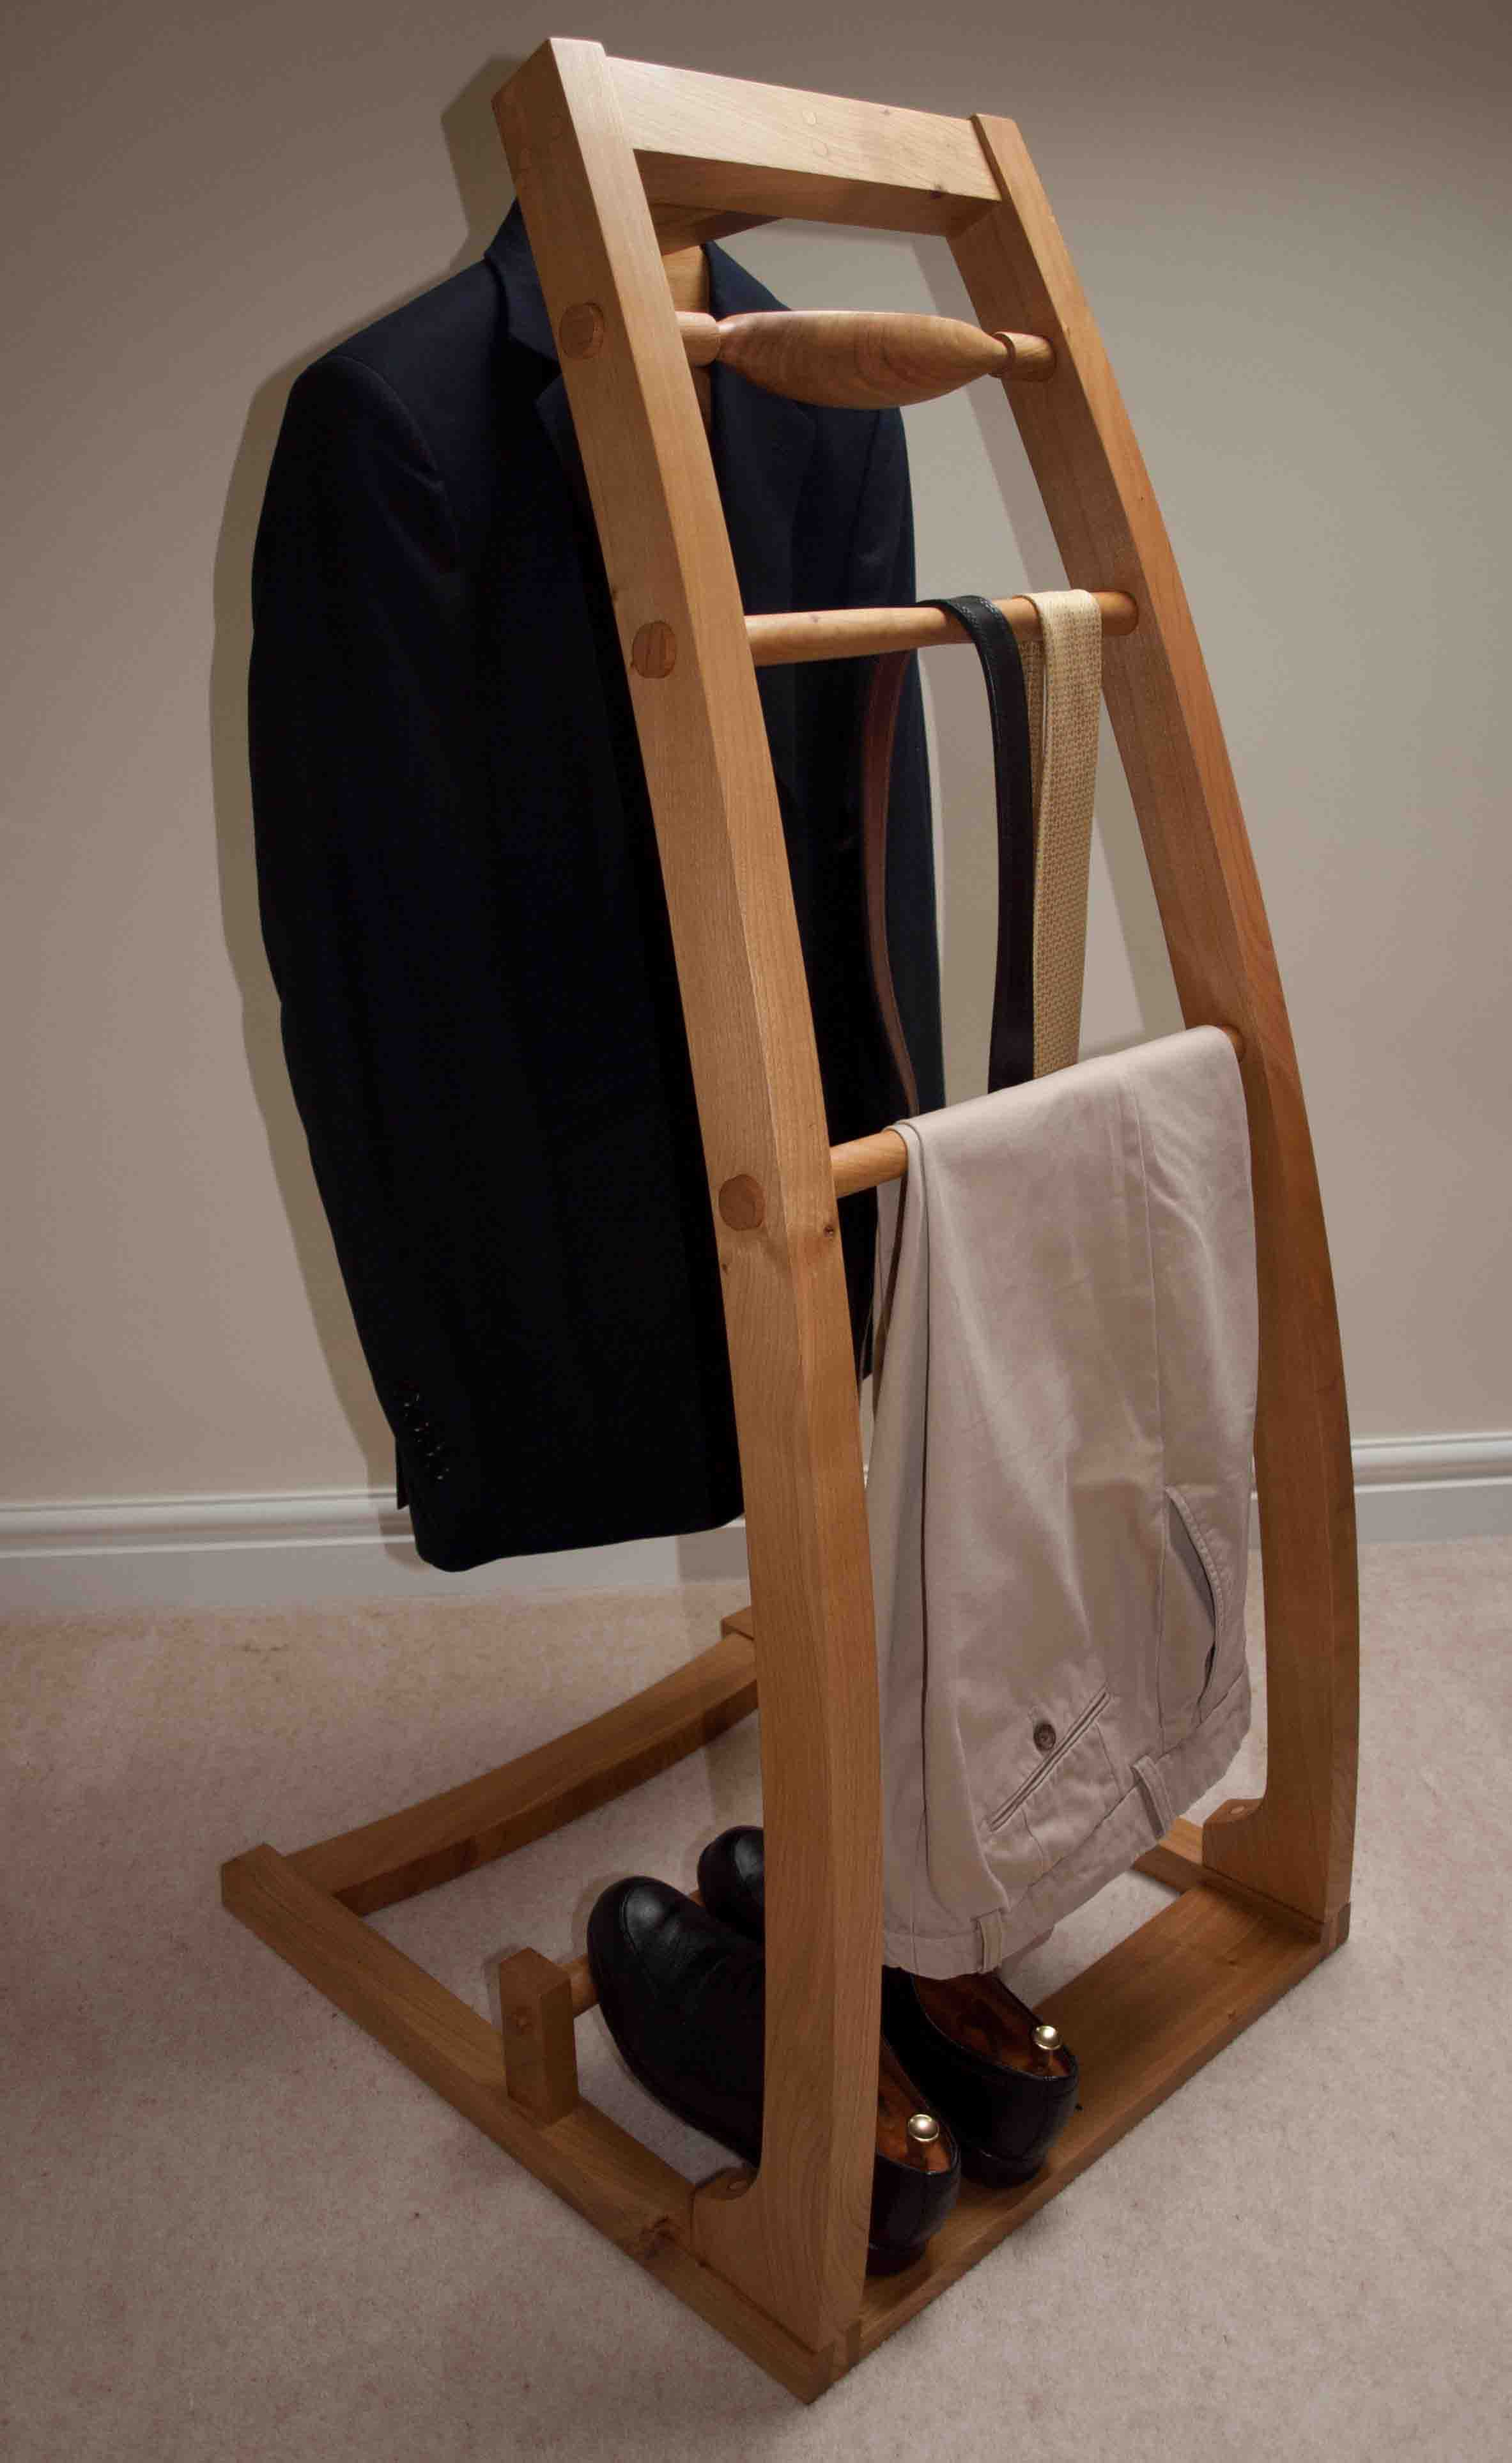 Valet Stand Valet Stands Annalnicholsfurniture Co Uk Clothes Valets Furniture Diy Furniture